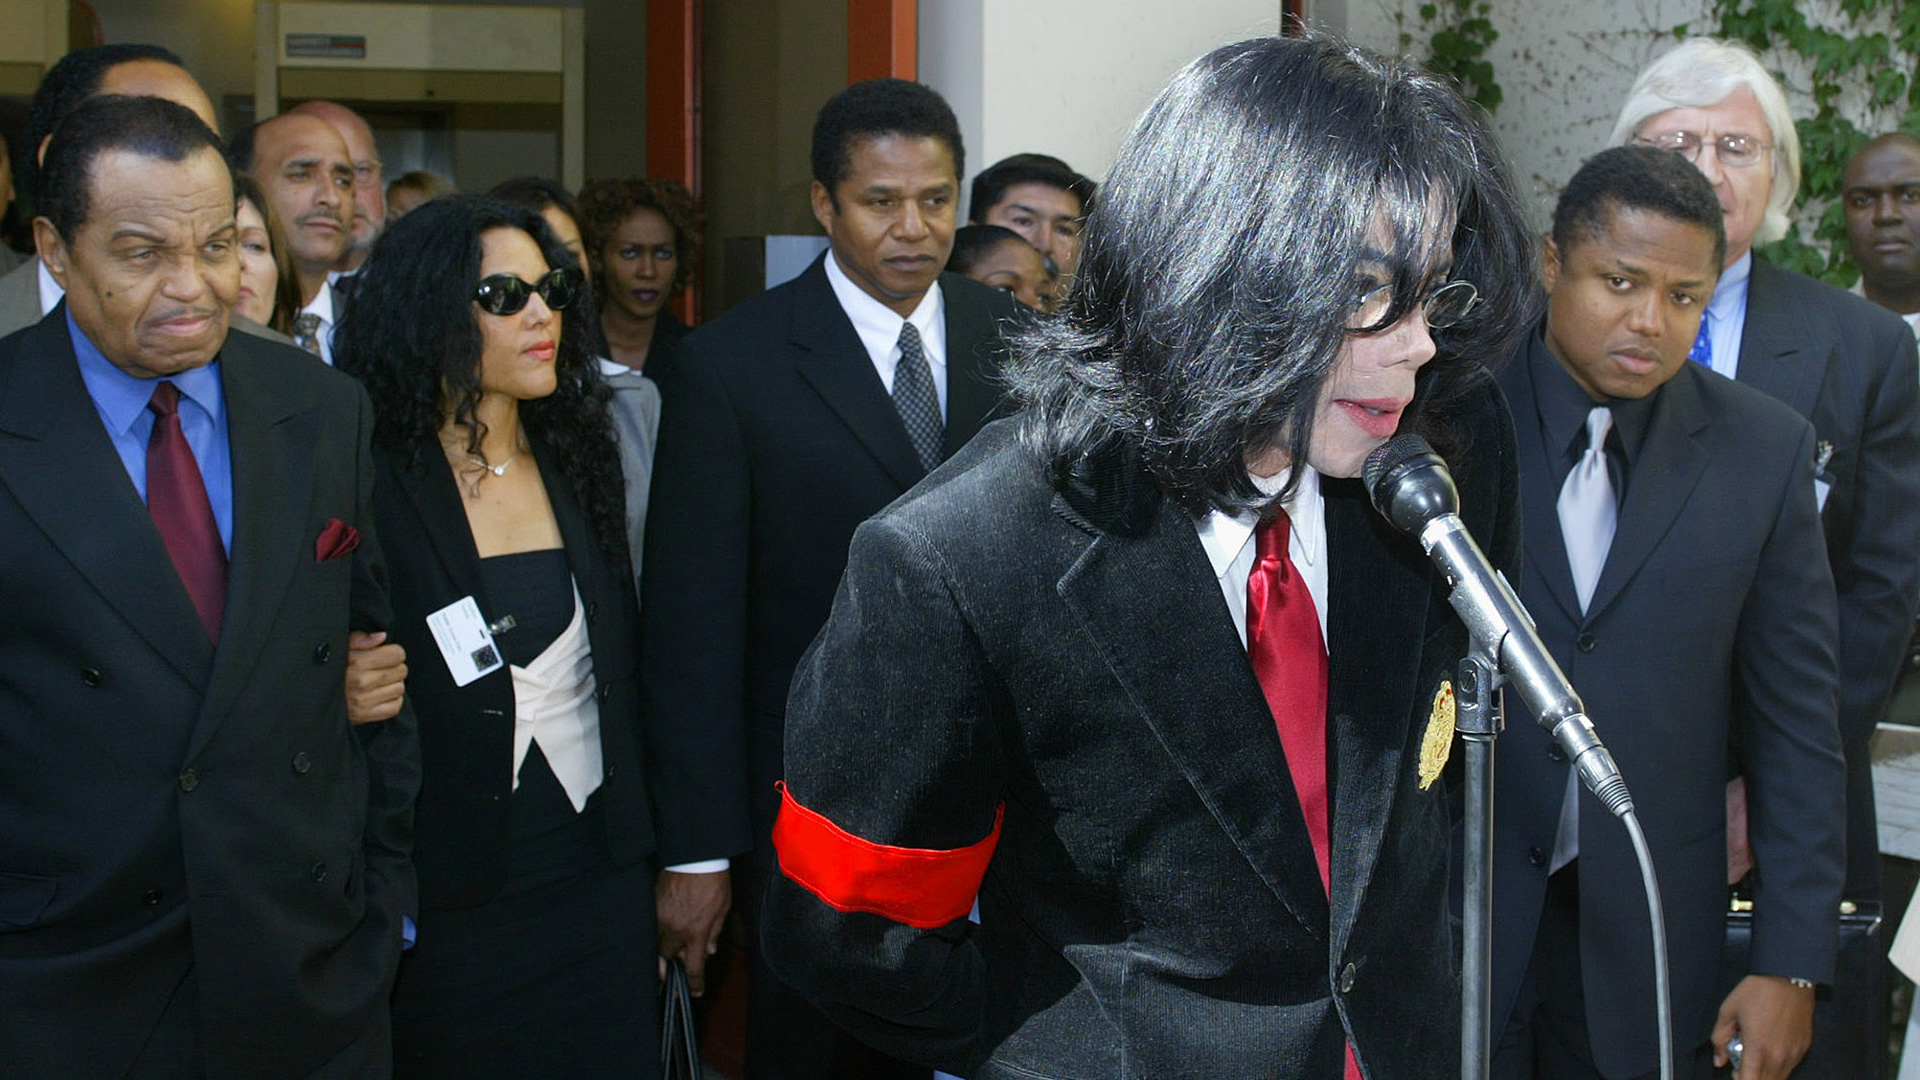 Pop star Michael Jackson, center, speaks to the press following his indictment on charges related to child molestation